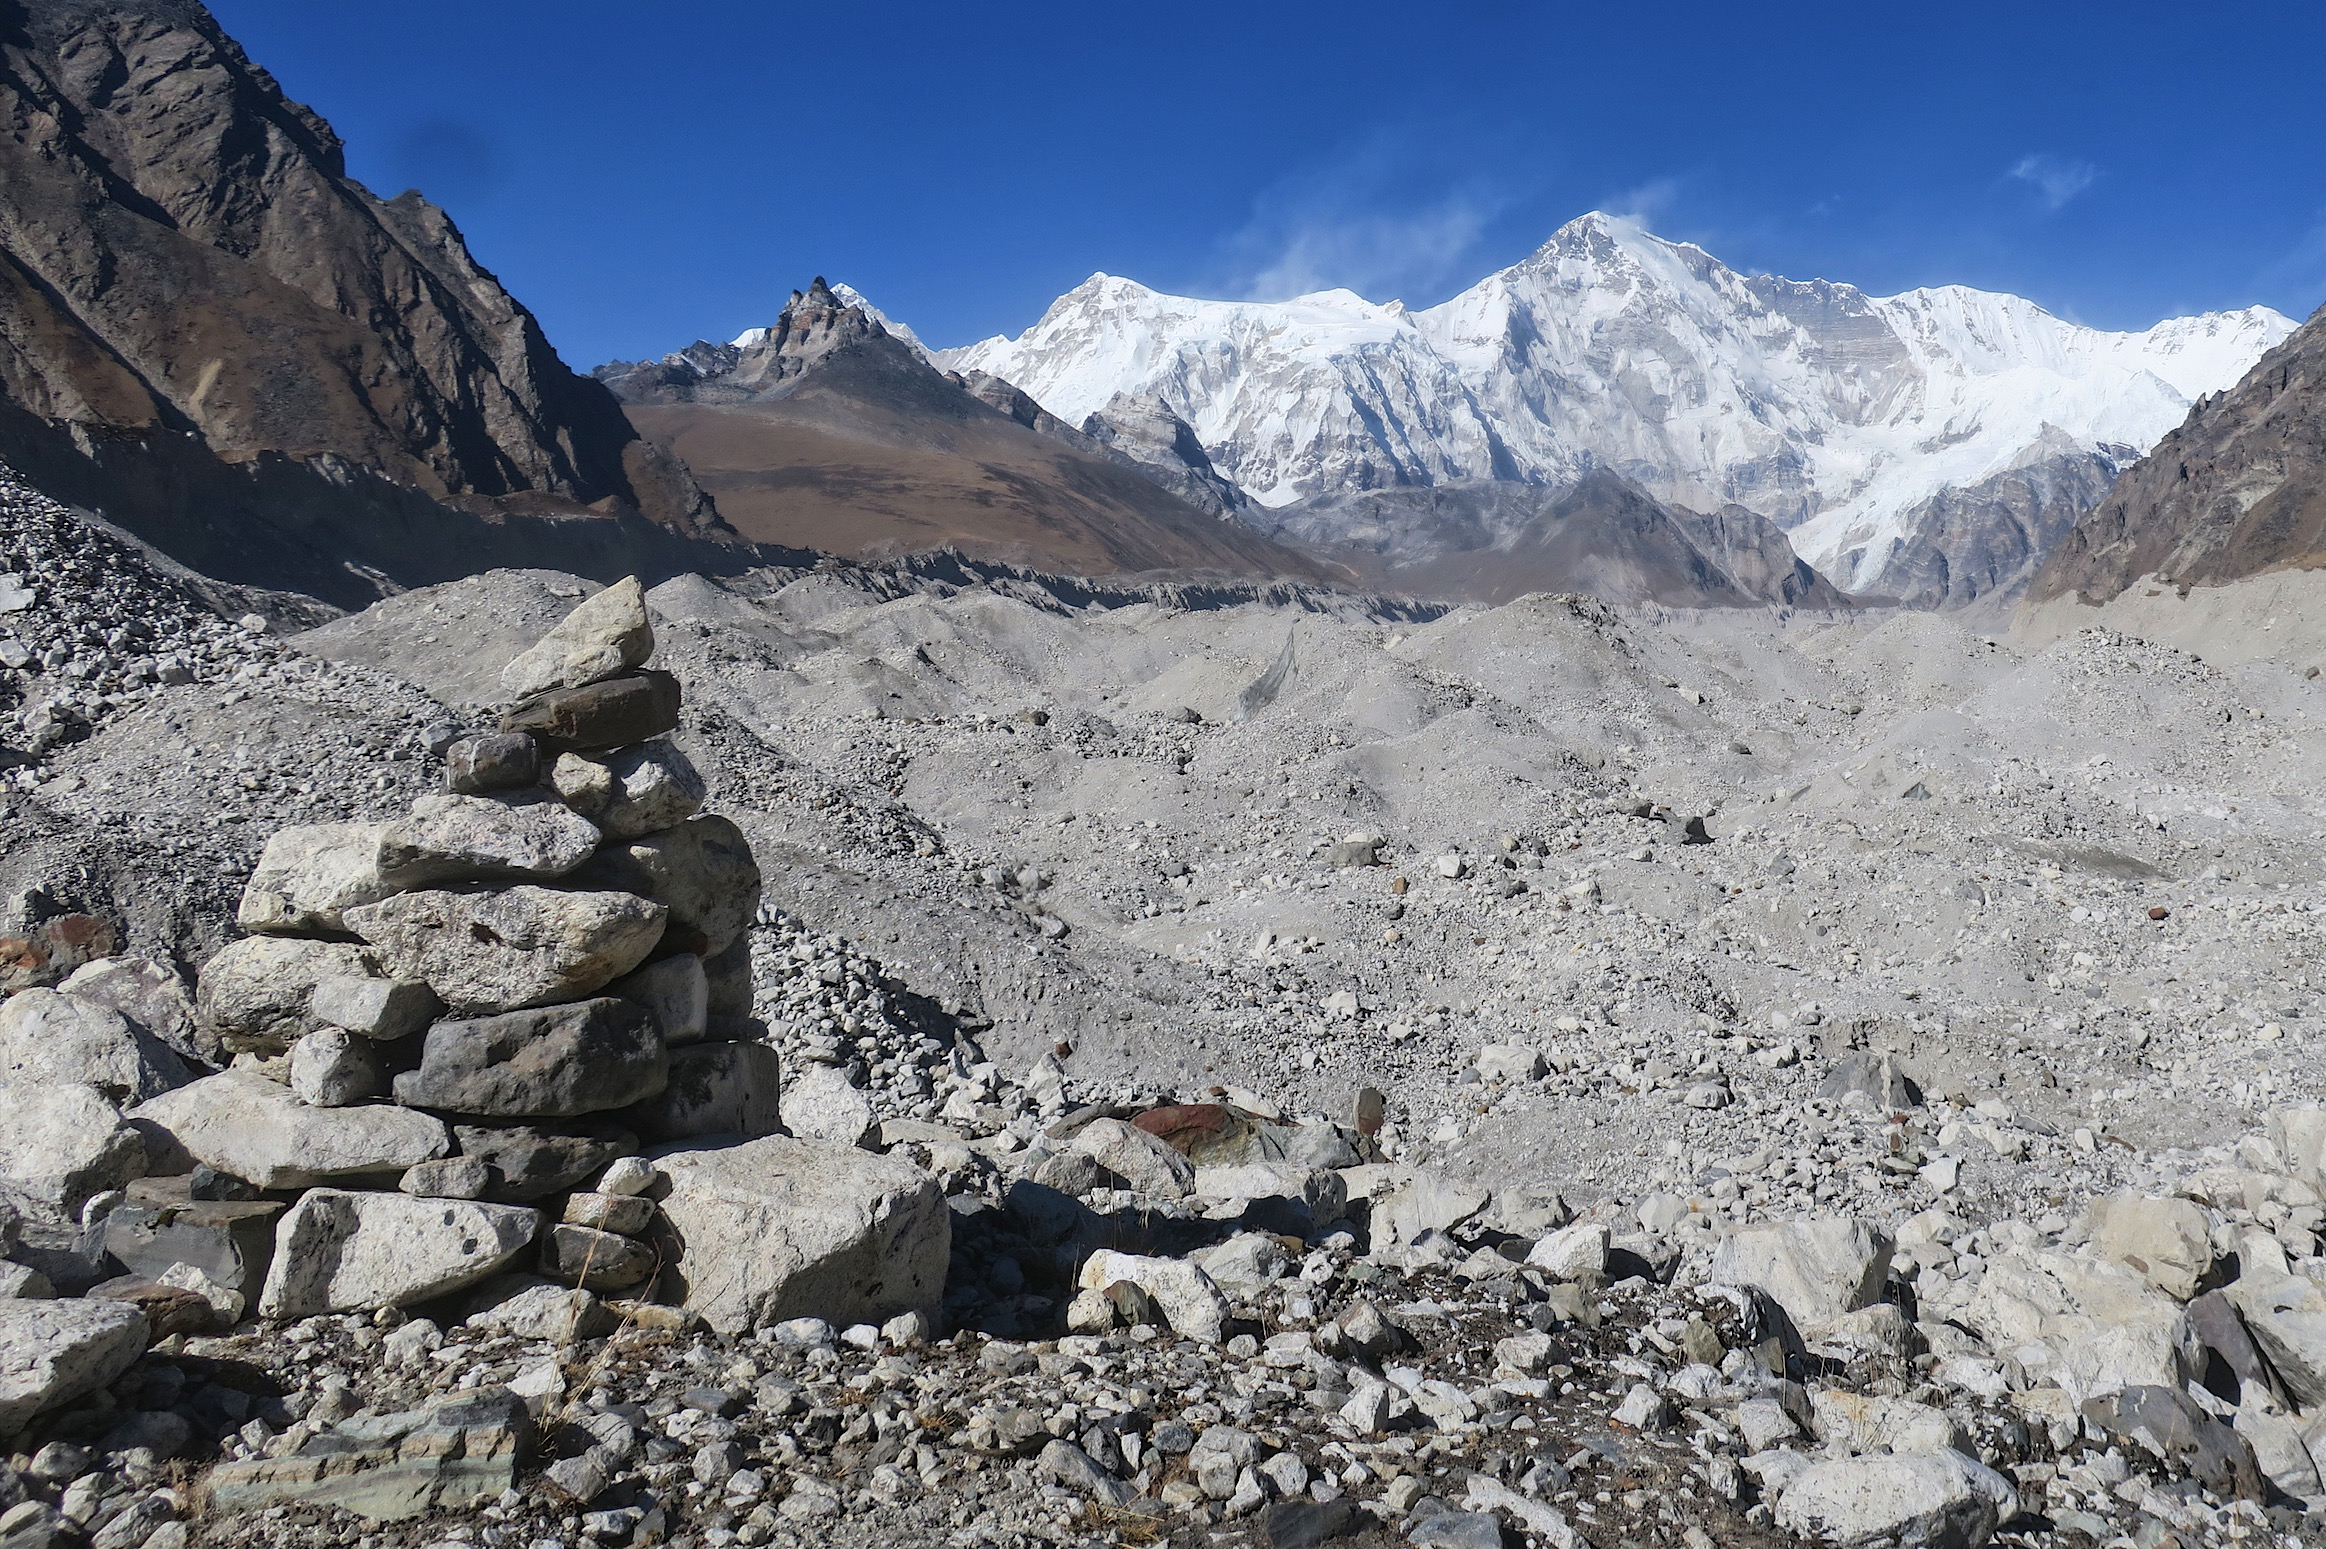 Even with the cairns, the trail across the Gokyo glacier can be tough to find.